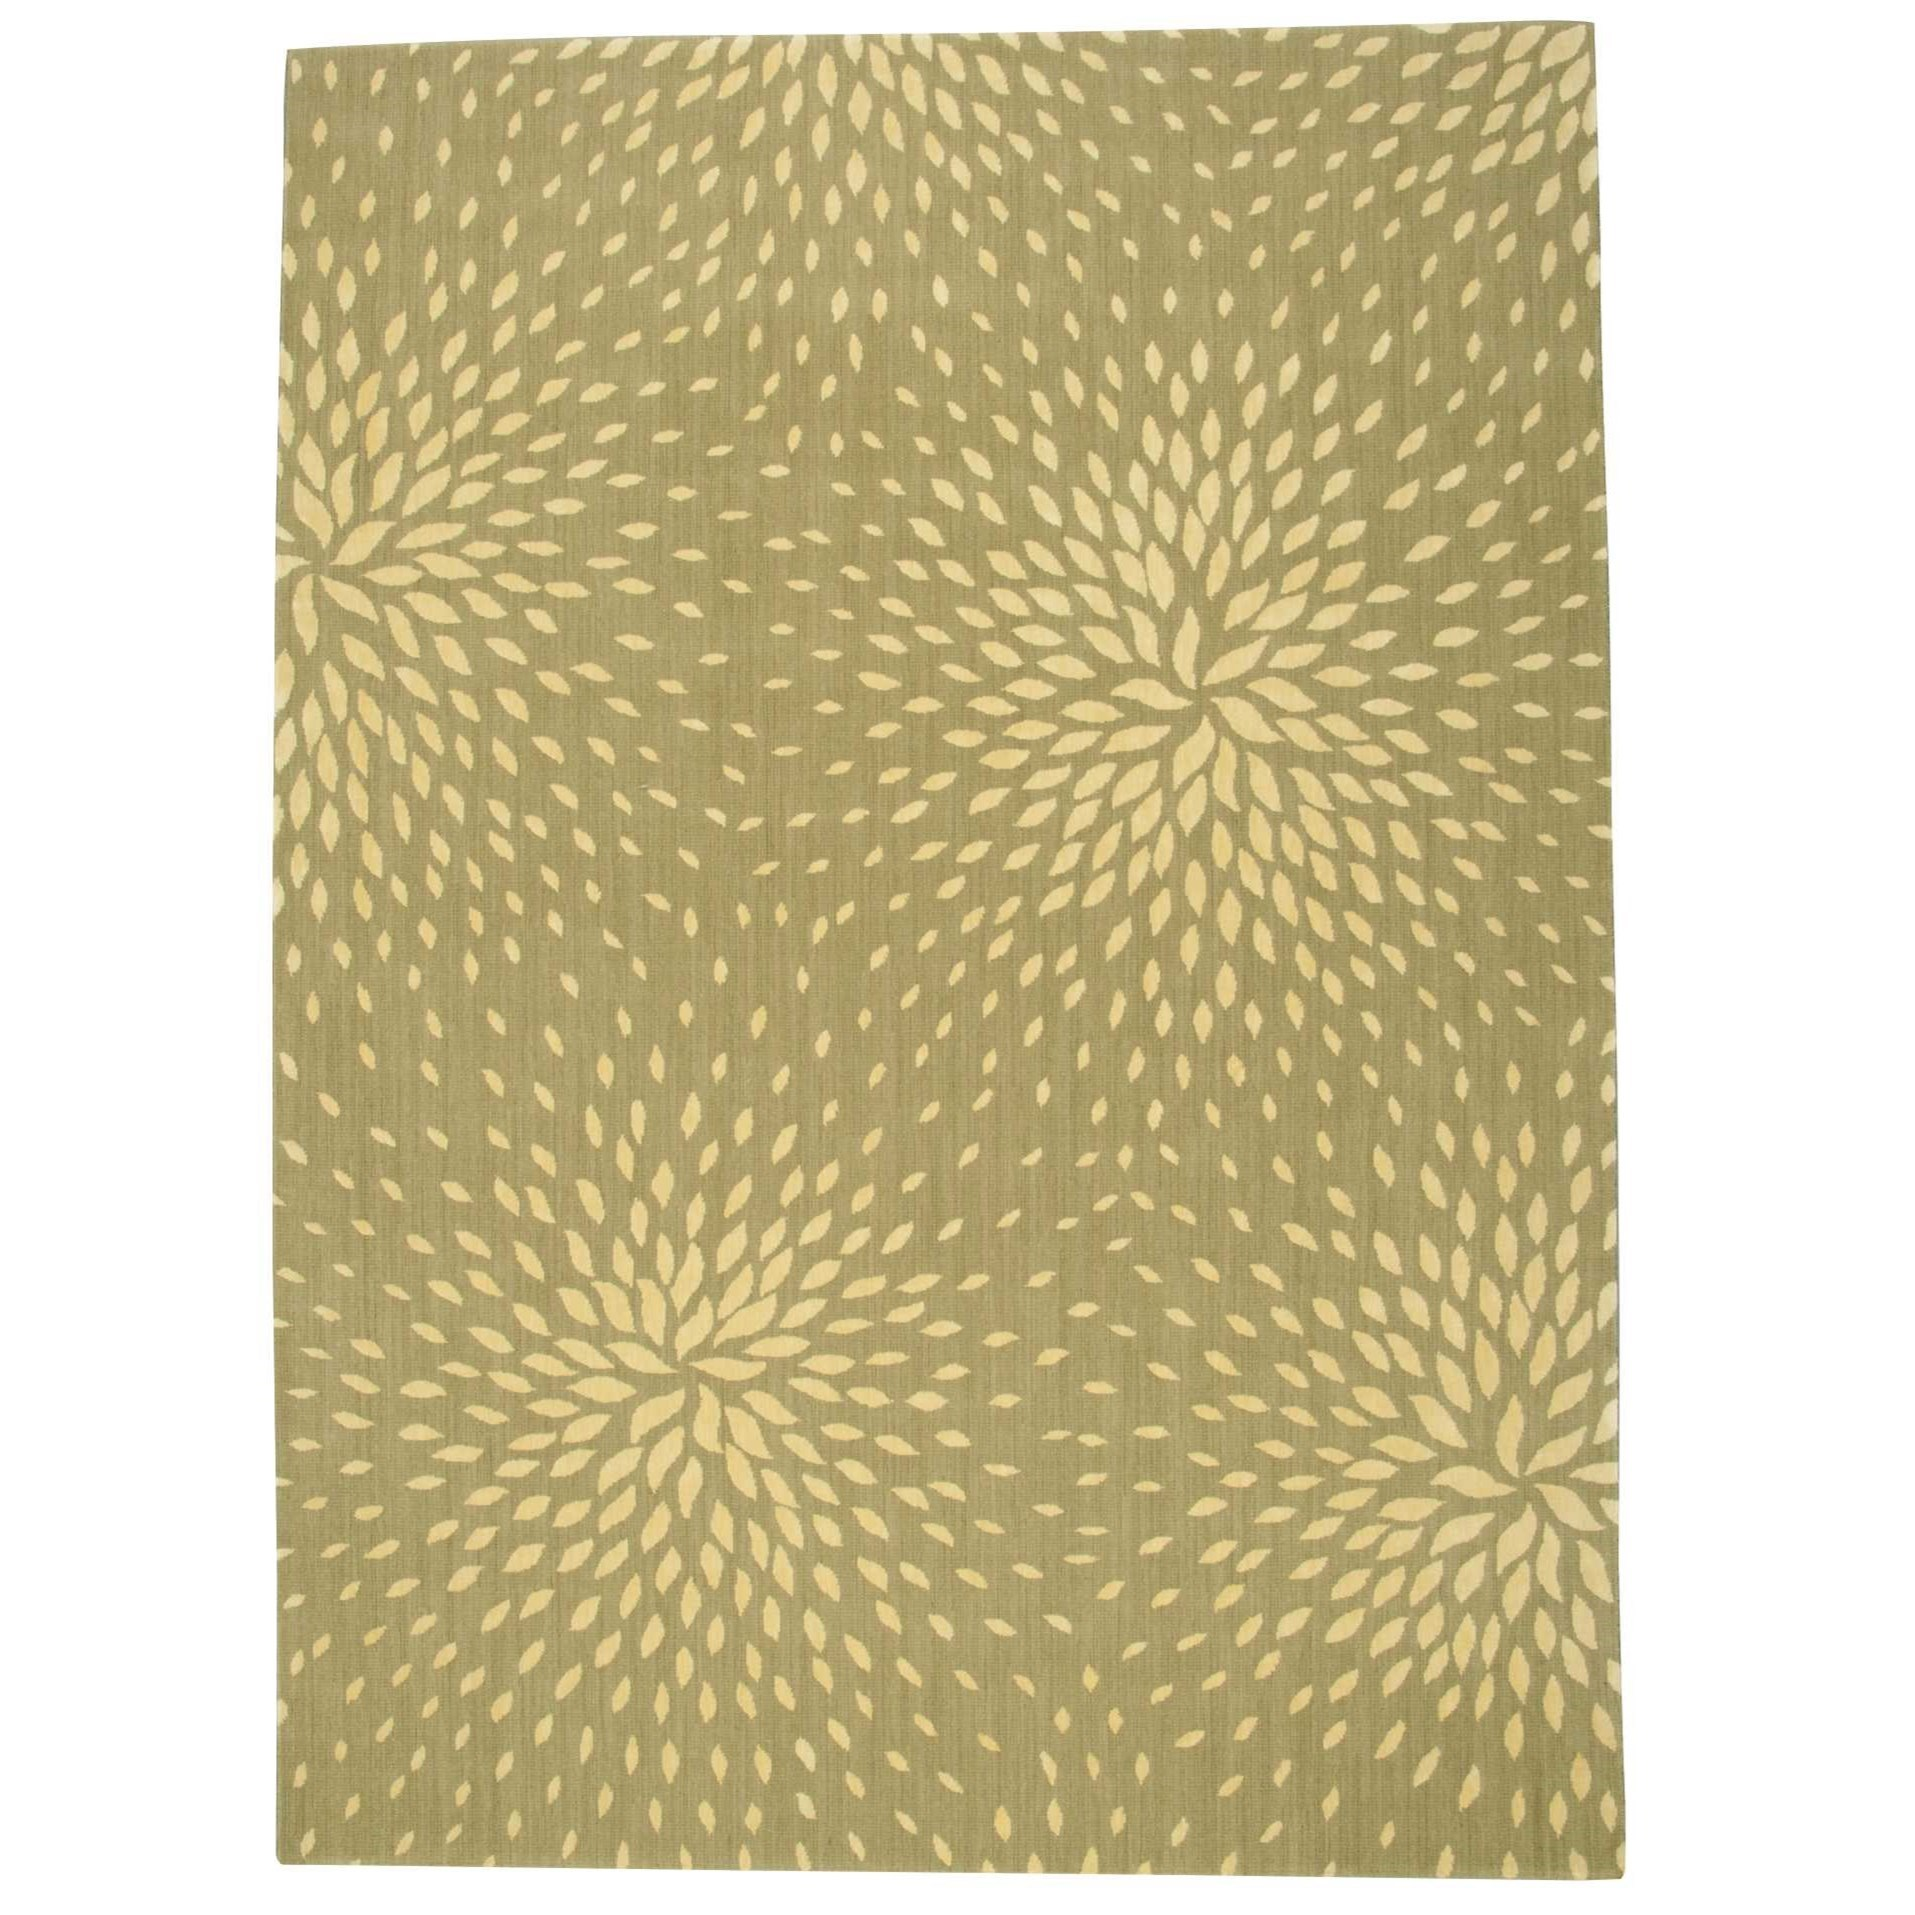 "Capri 7'9"" x 10'10"" Light Green Rectangle Rug by Nourison at Story & Lee Furniture"